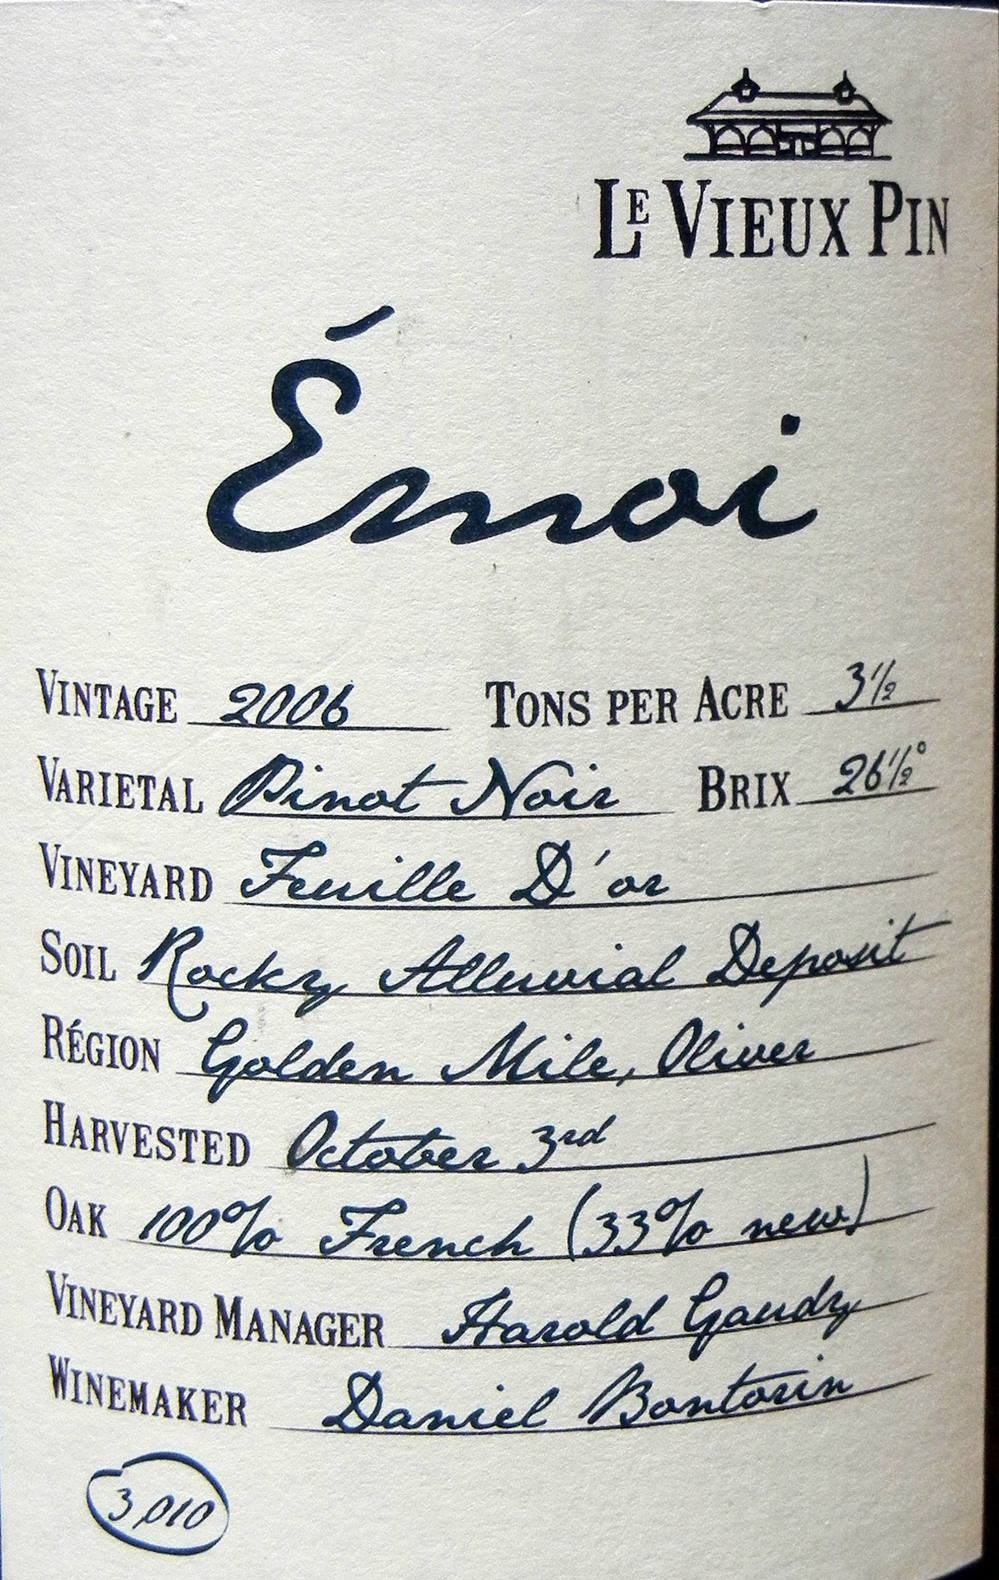 Le Vieux Pin Emoi Pinot Noir 2006 Label - BC Pinot Noir Tasting Review 1